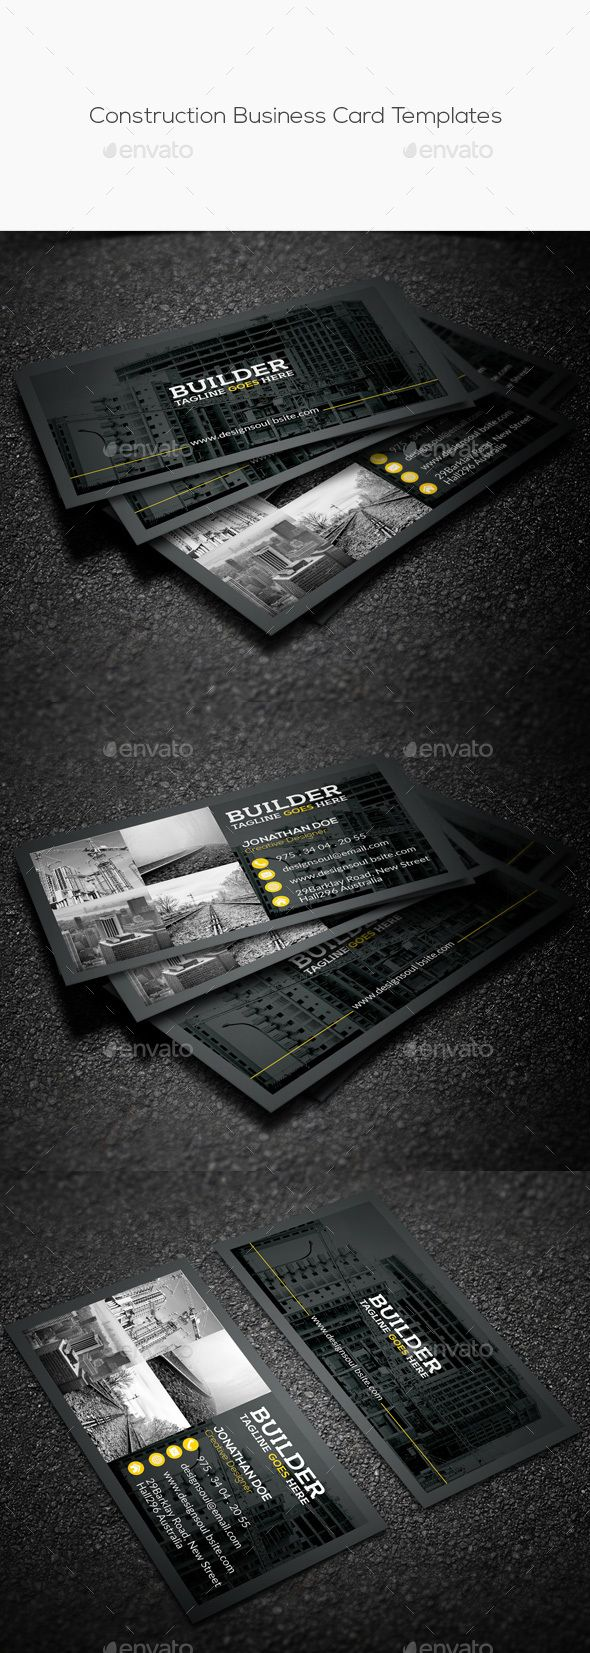 Construction Business Card Template PSD #design Download: http://graphicriver.net/item/construction-business-card-templates/14328498?ref=ksioks